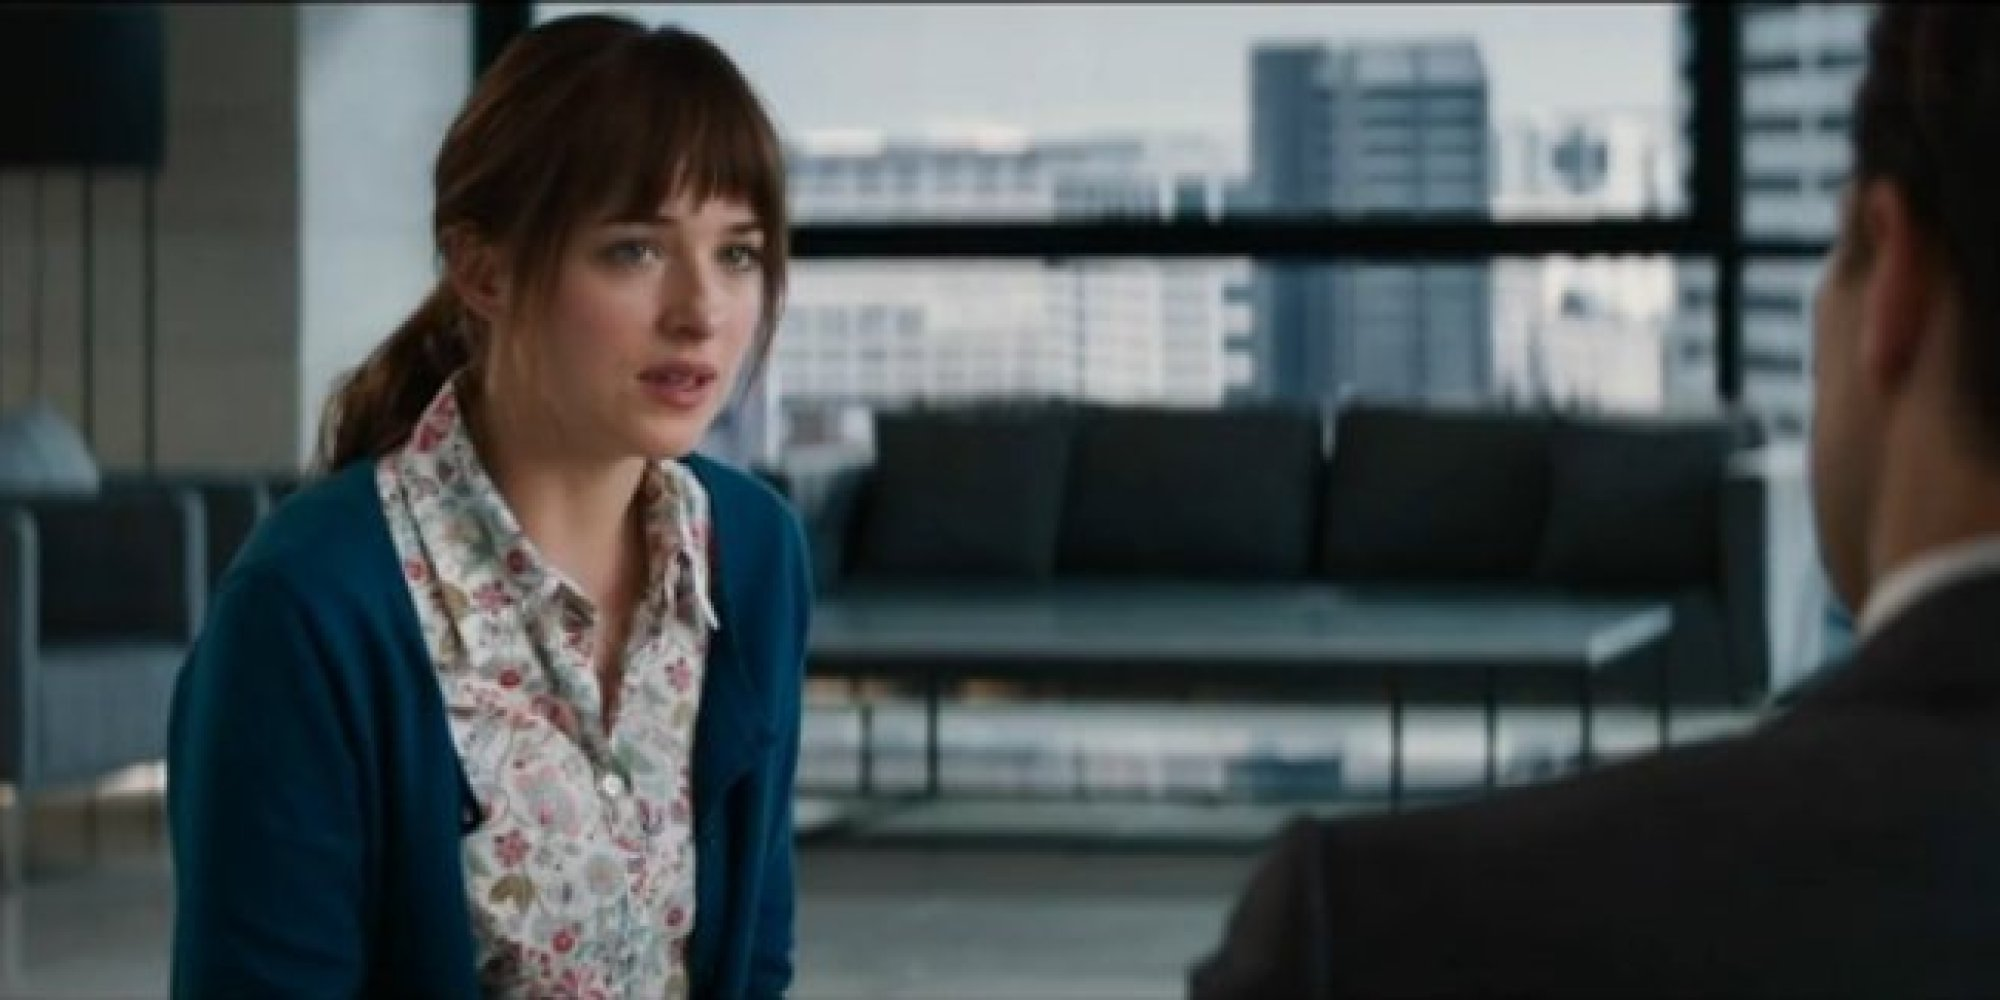 New 39 fifty shades of grey 39 trailer debuts during the for Fifthy shade of grey